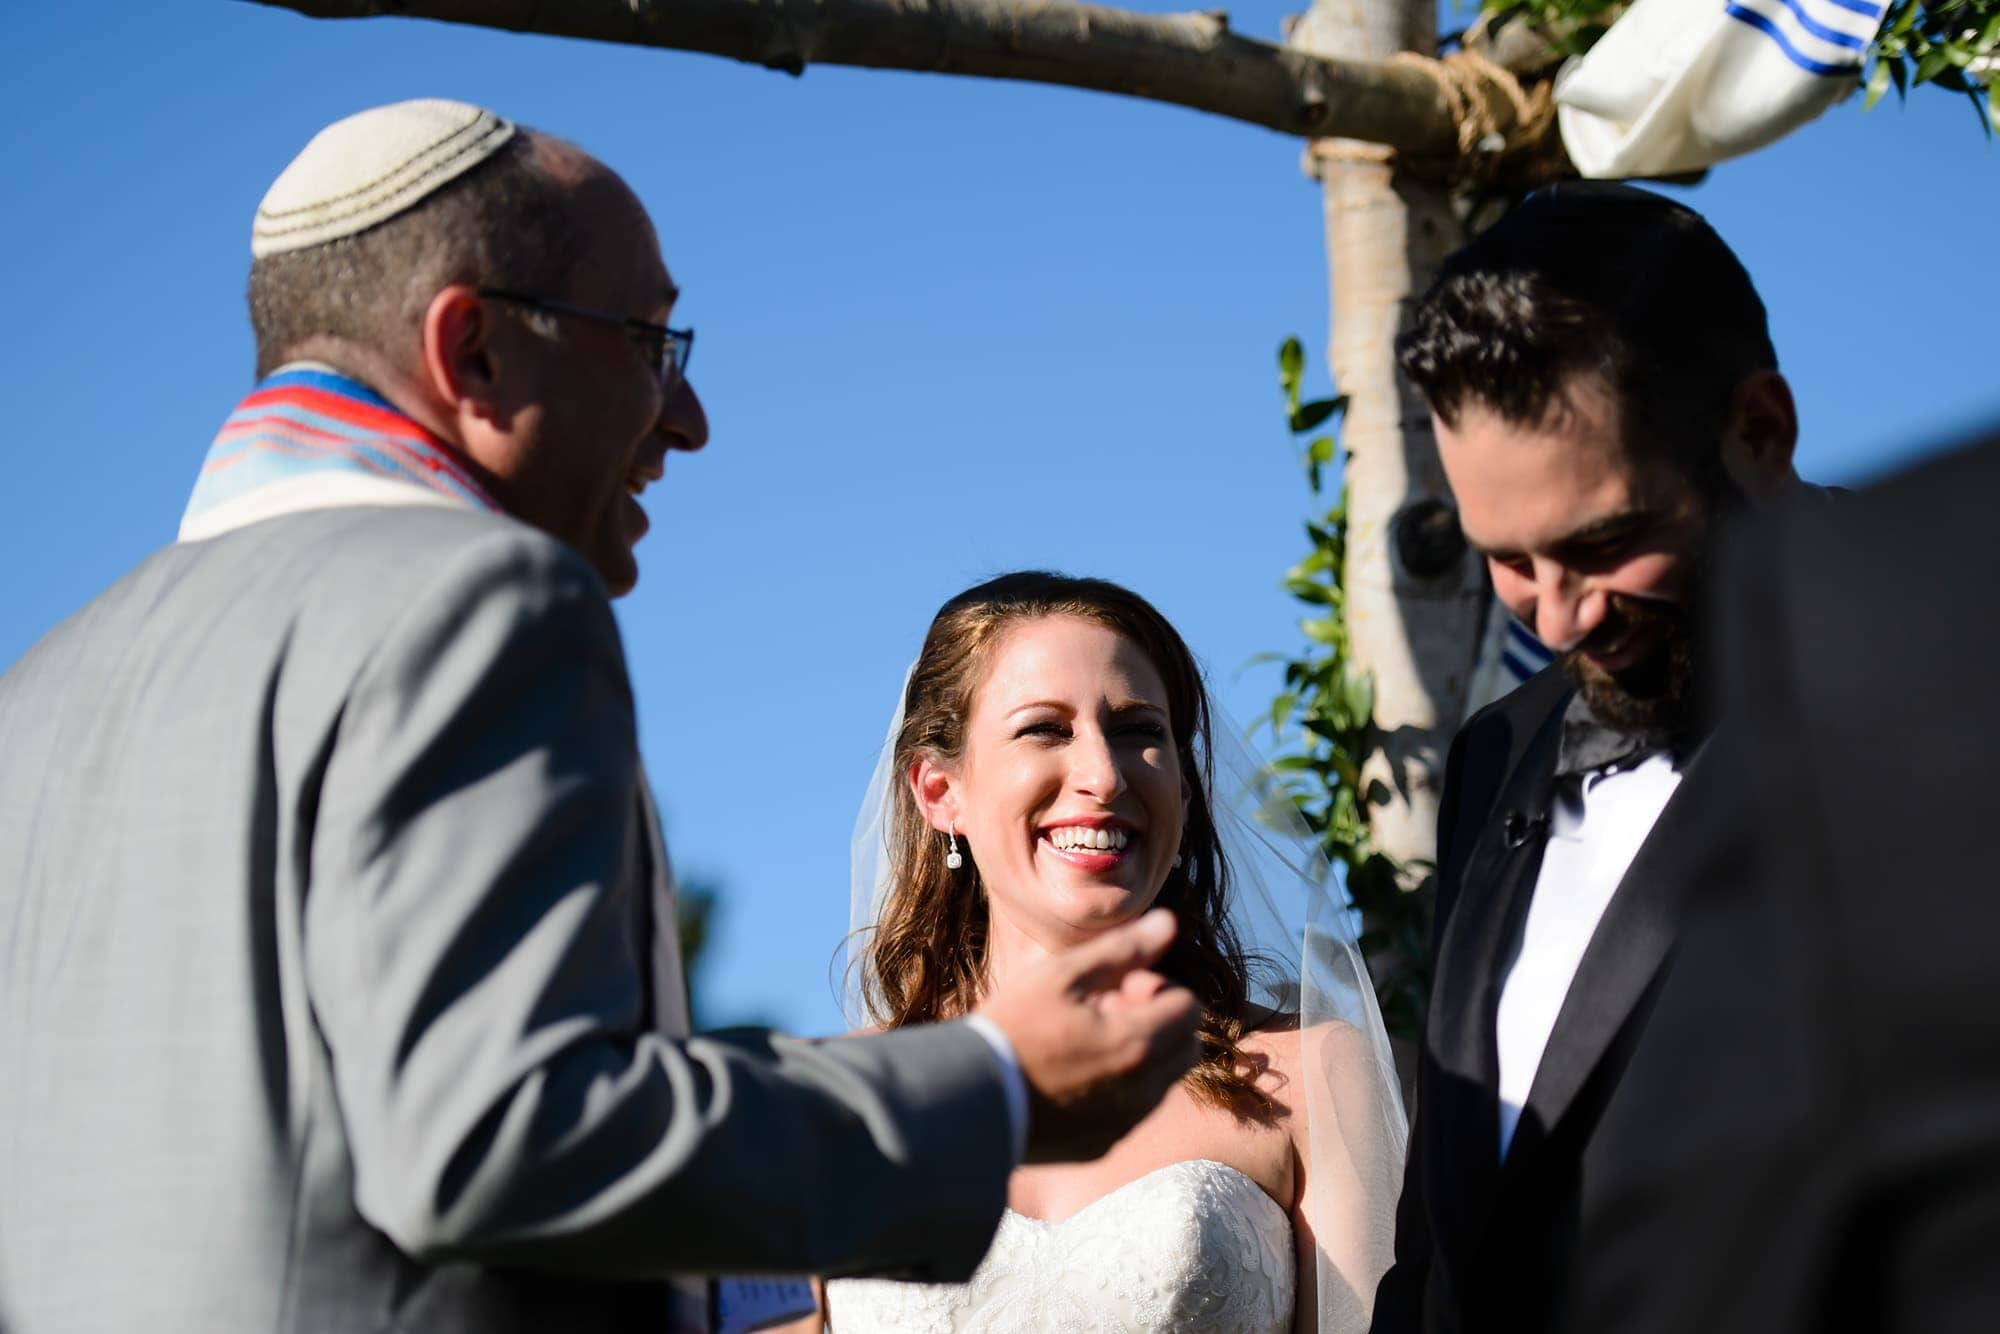 The Bride and Groom share a laugh during the ceremony